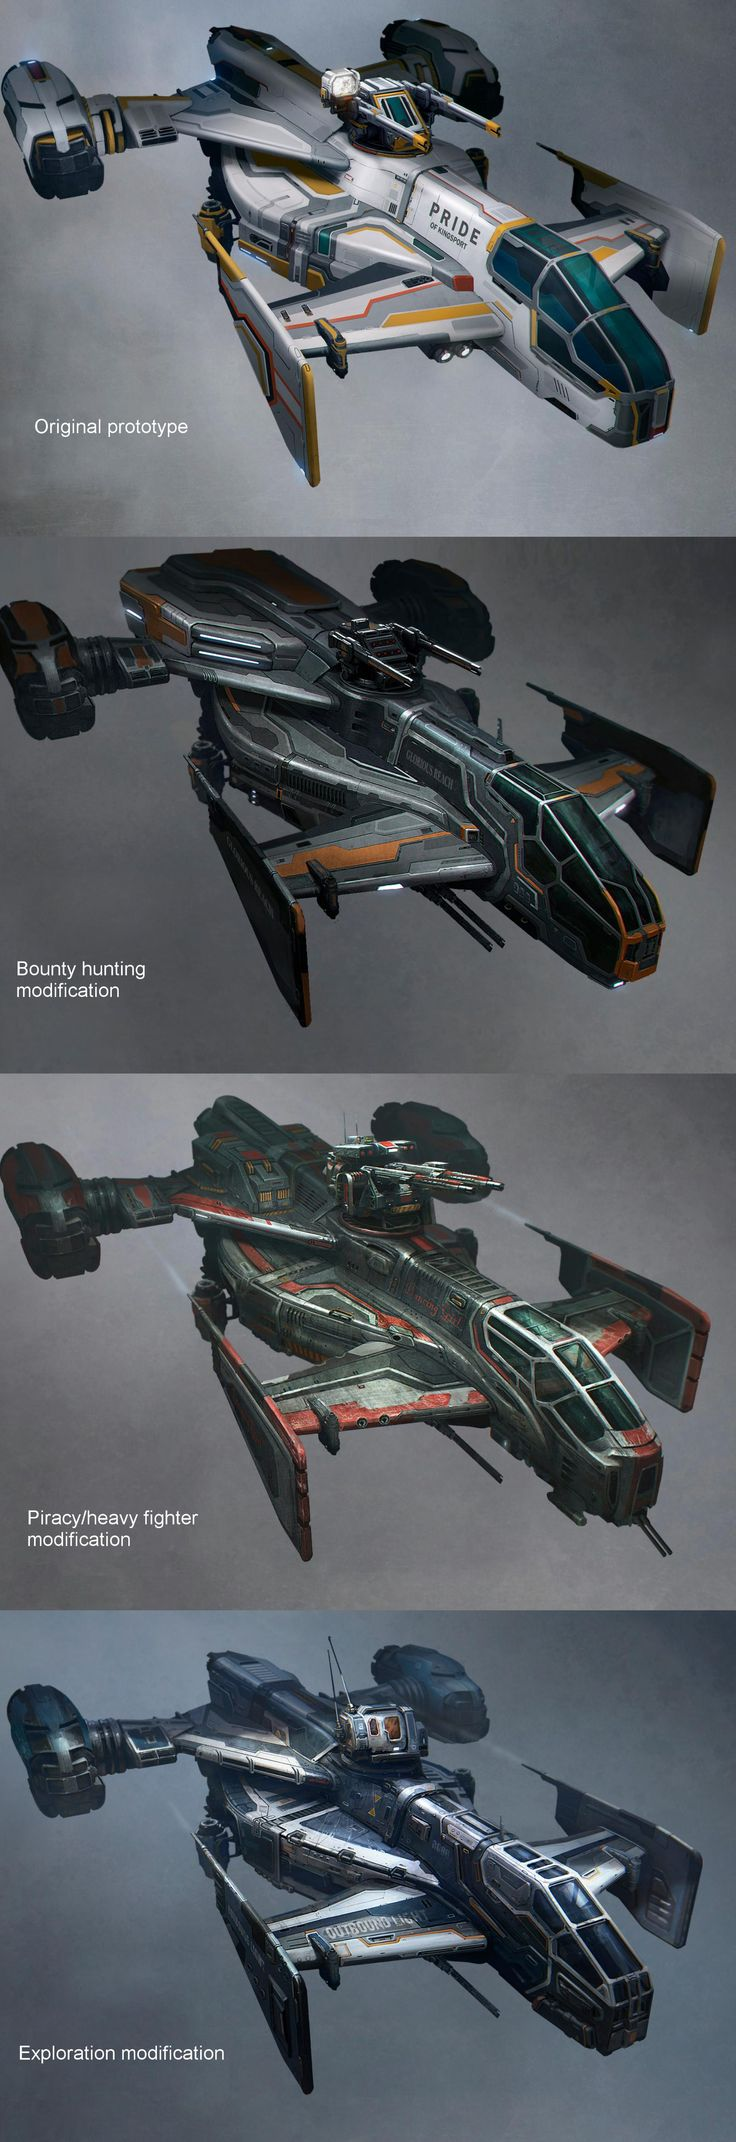 Star Citizen Cutlass Variants | Sci-Fi futuristic vehicles spaceship spacecraft